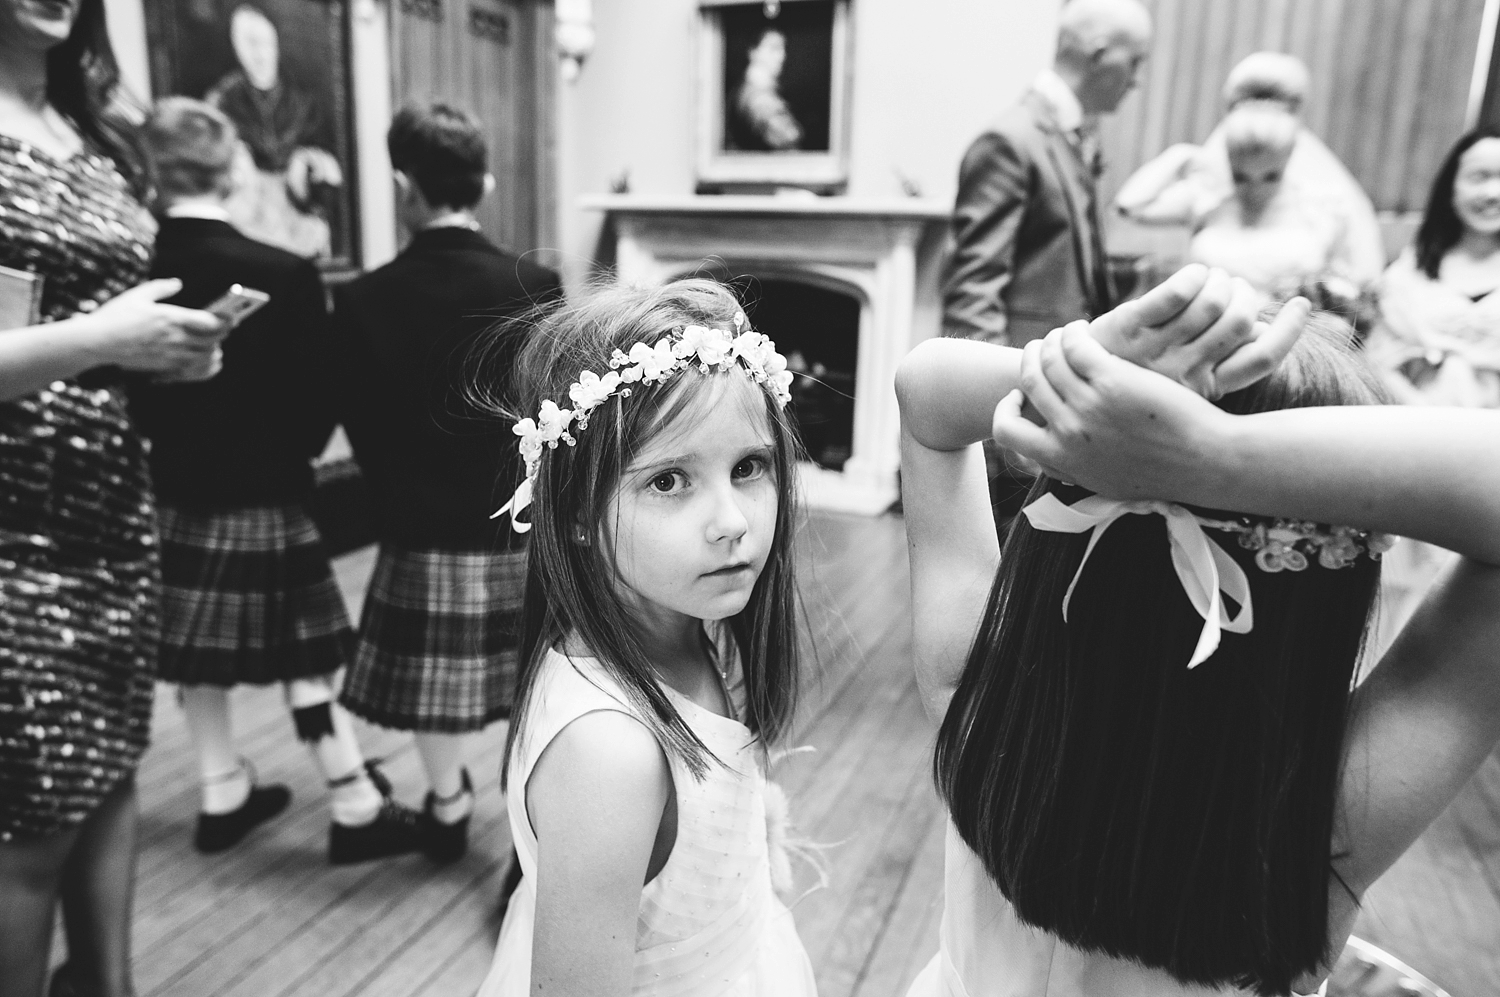 3403-lisa-devine-photography-alternative-stylish-creative-wedding-photography-glasgow-scotland-uk.JPG